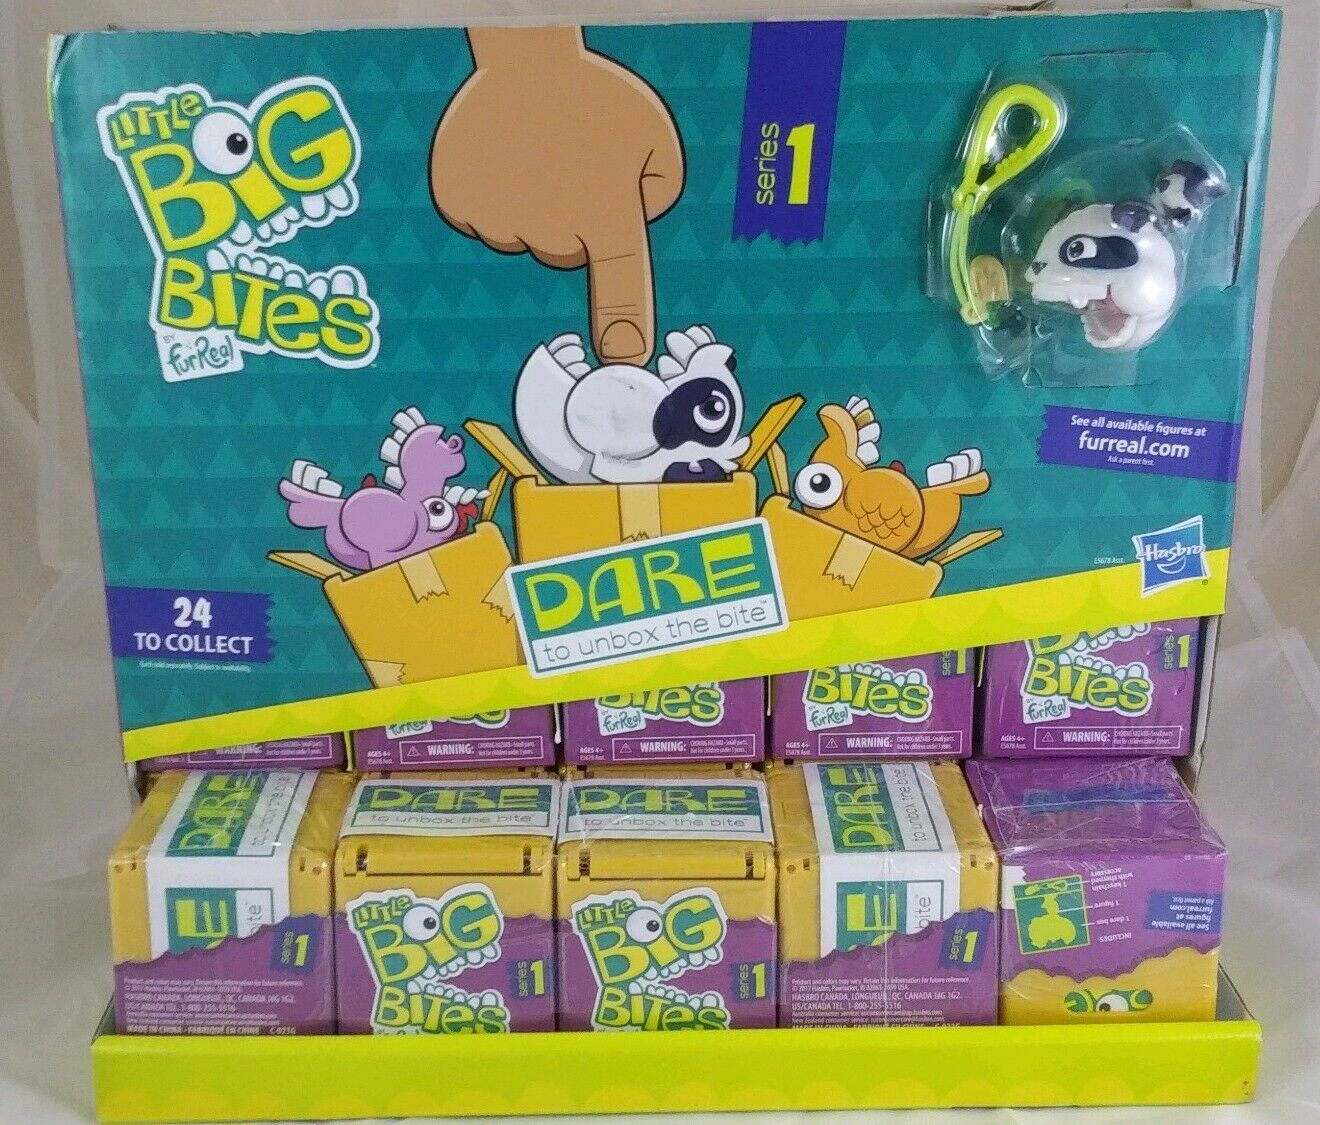 Lot of 25 Little Big Bites by FurReal Series 1 Brand New w Display Sealed